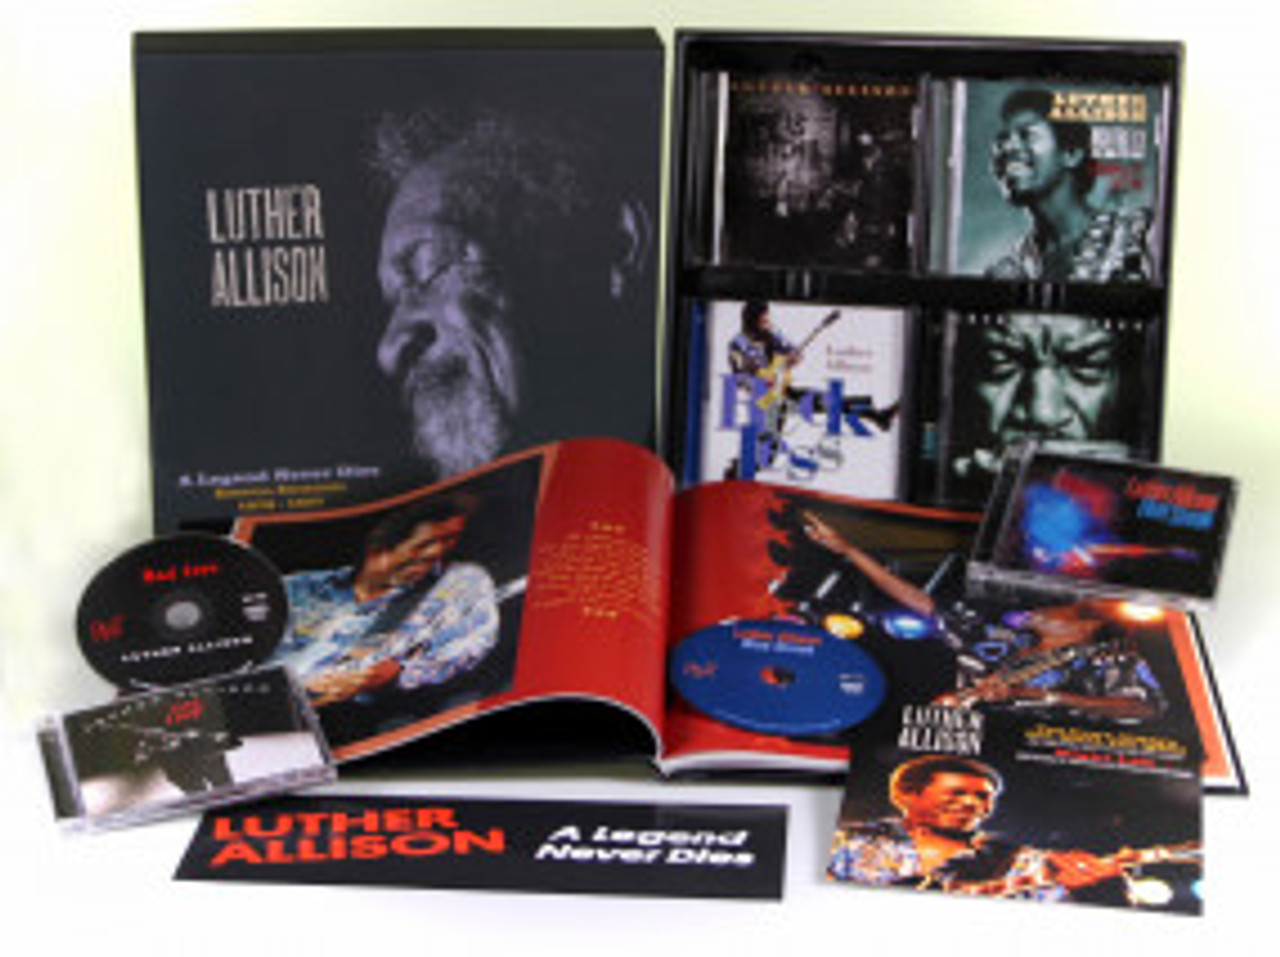 Luther Allison - A Legend Never Dies Essential Recordings 1976-1997